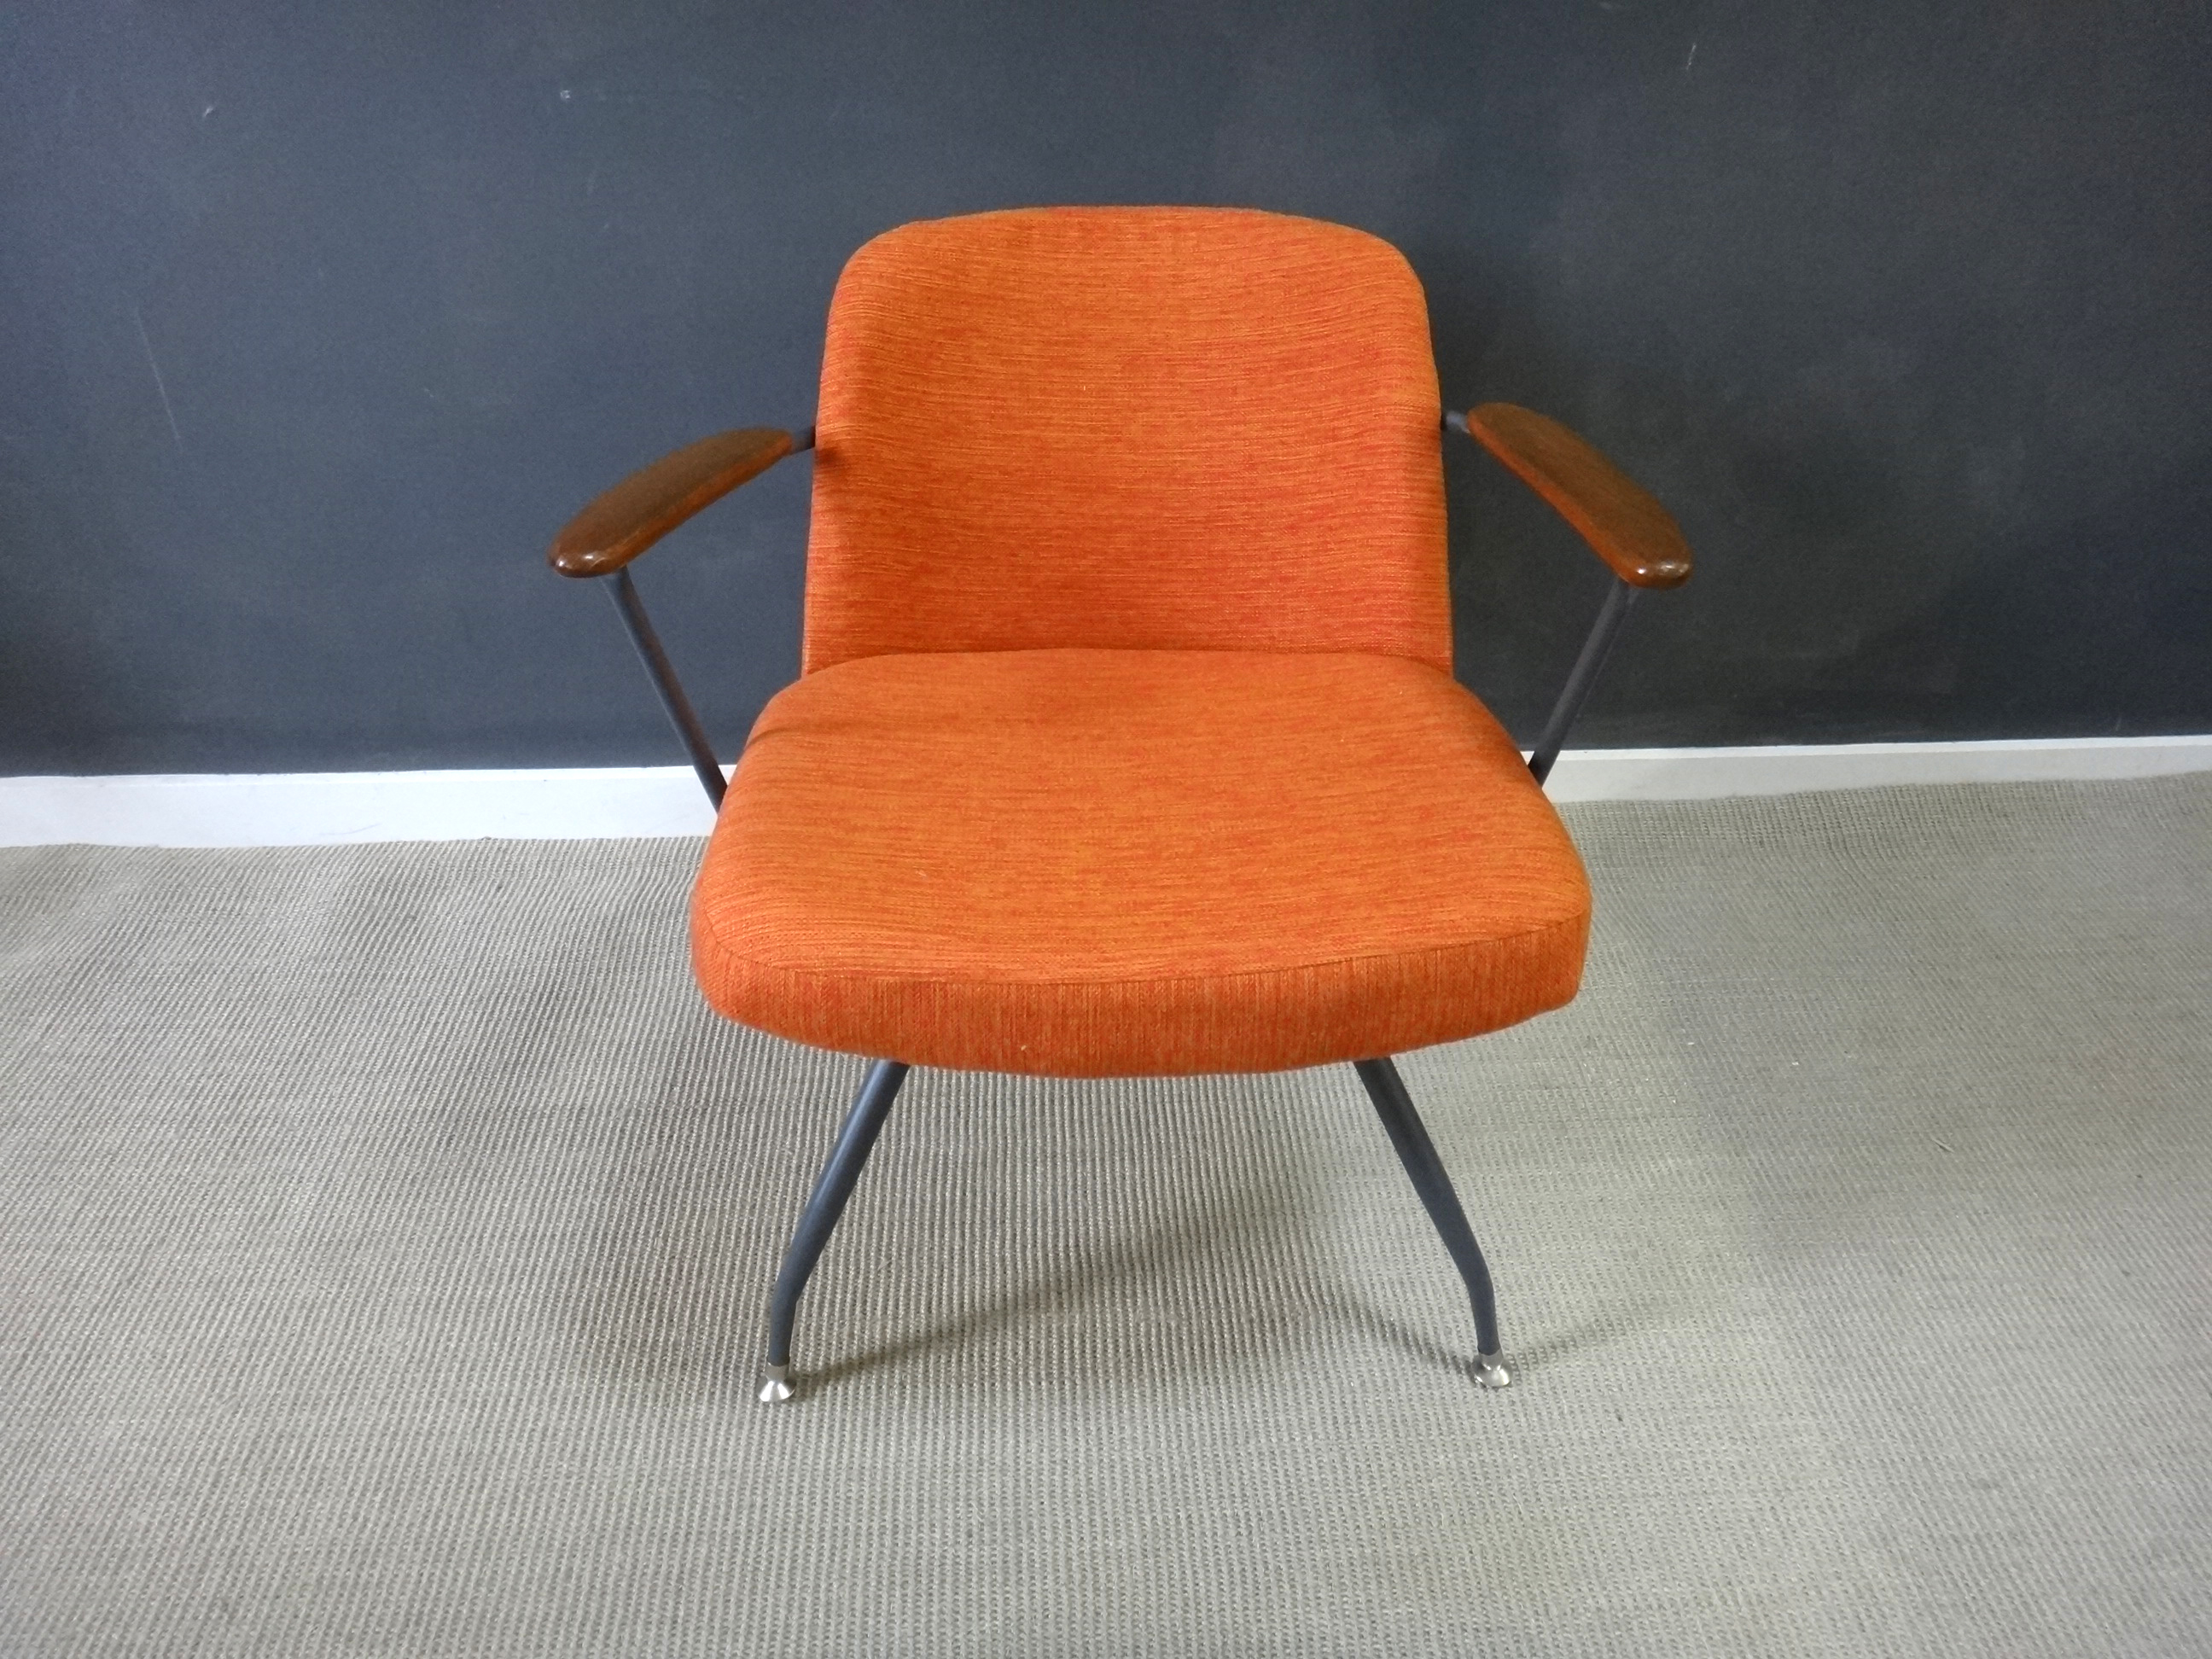 seng chicago chair how to buy a lift retrocraft design